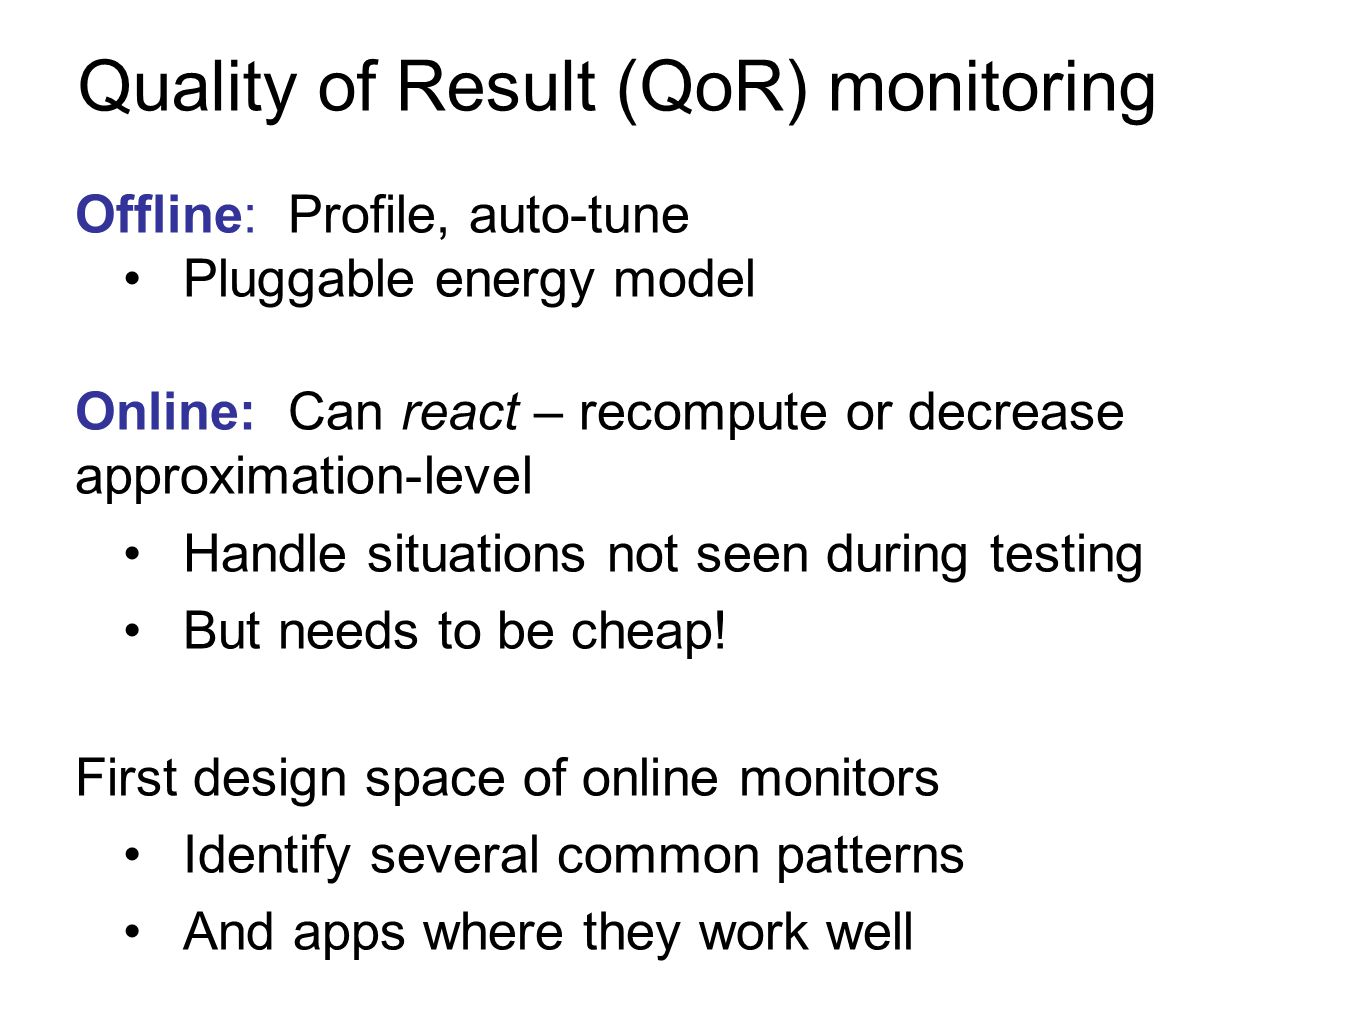 Quality of Result (QoR) monitoring